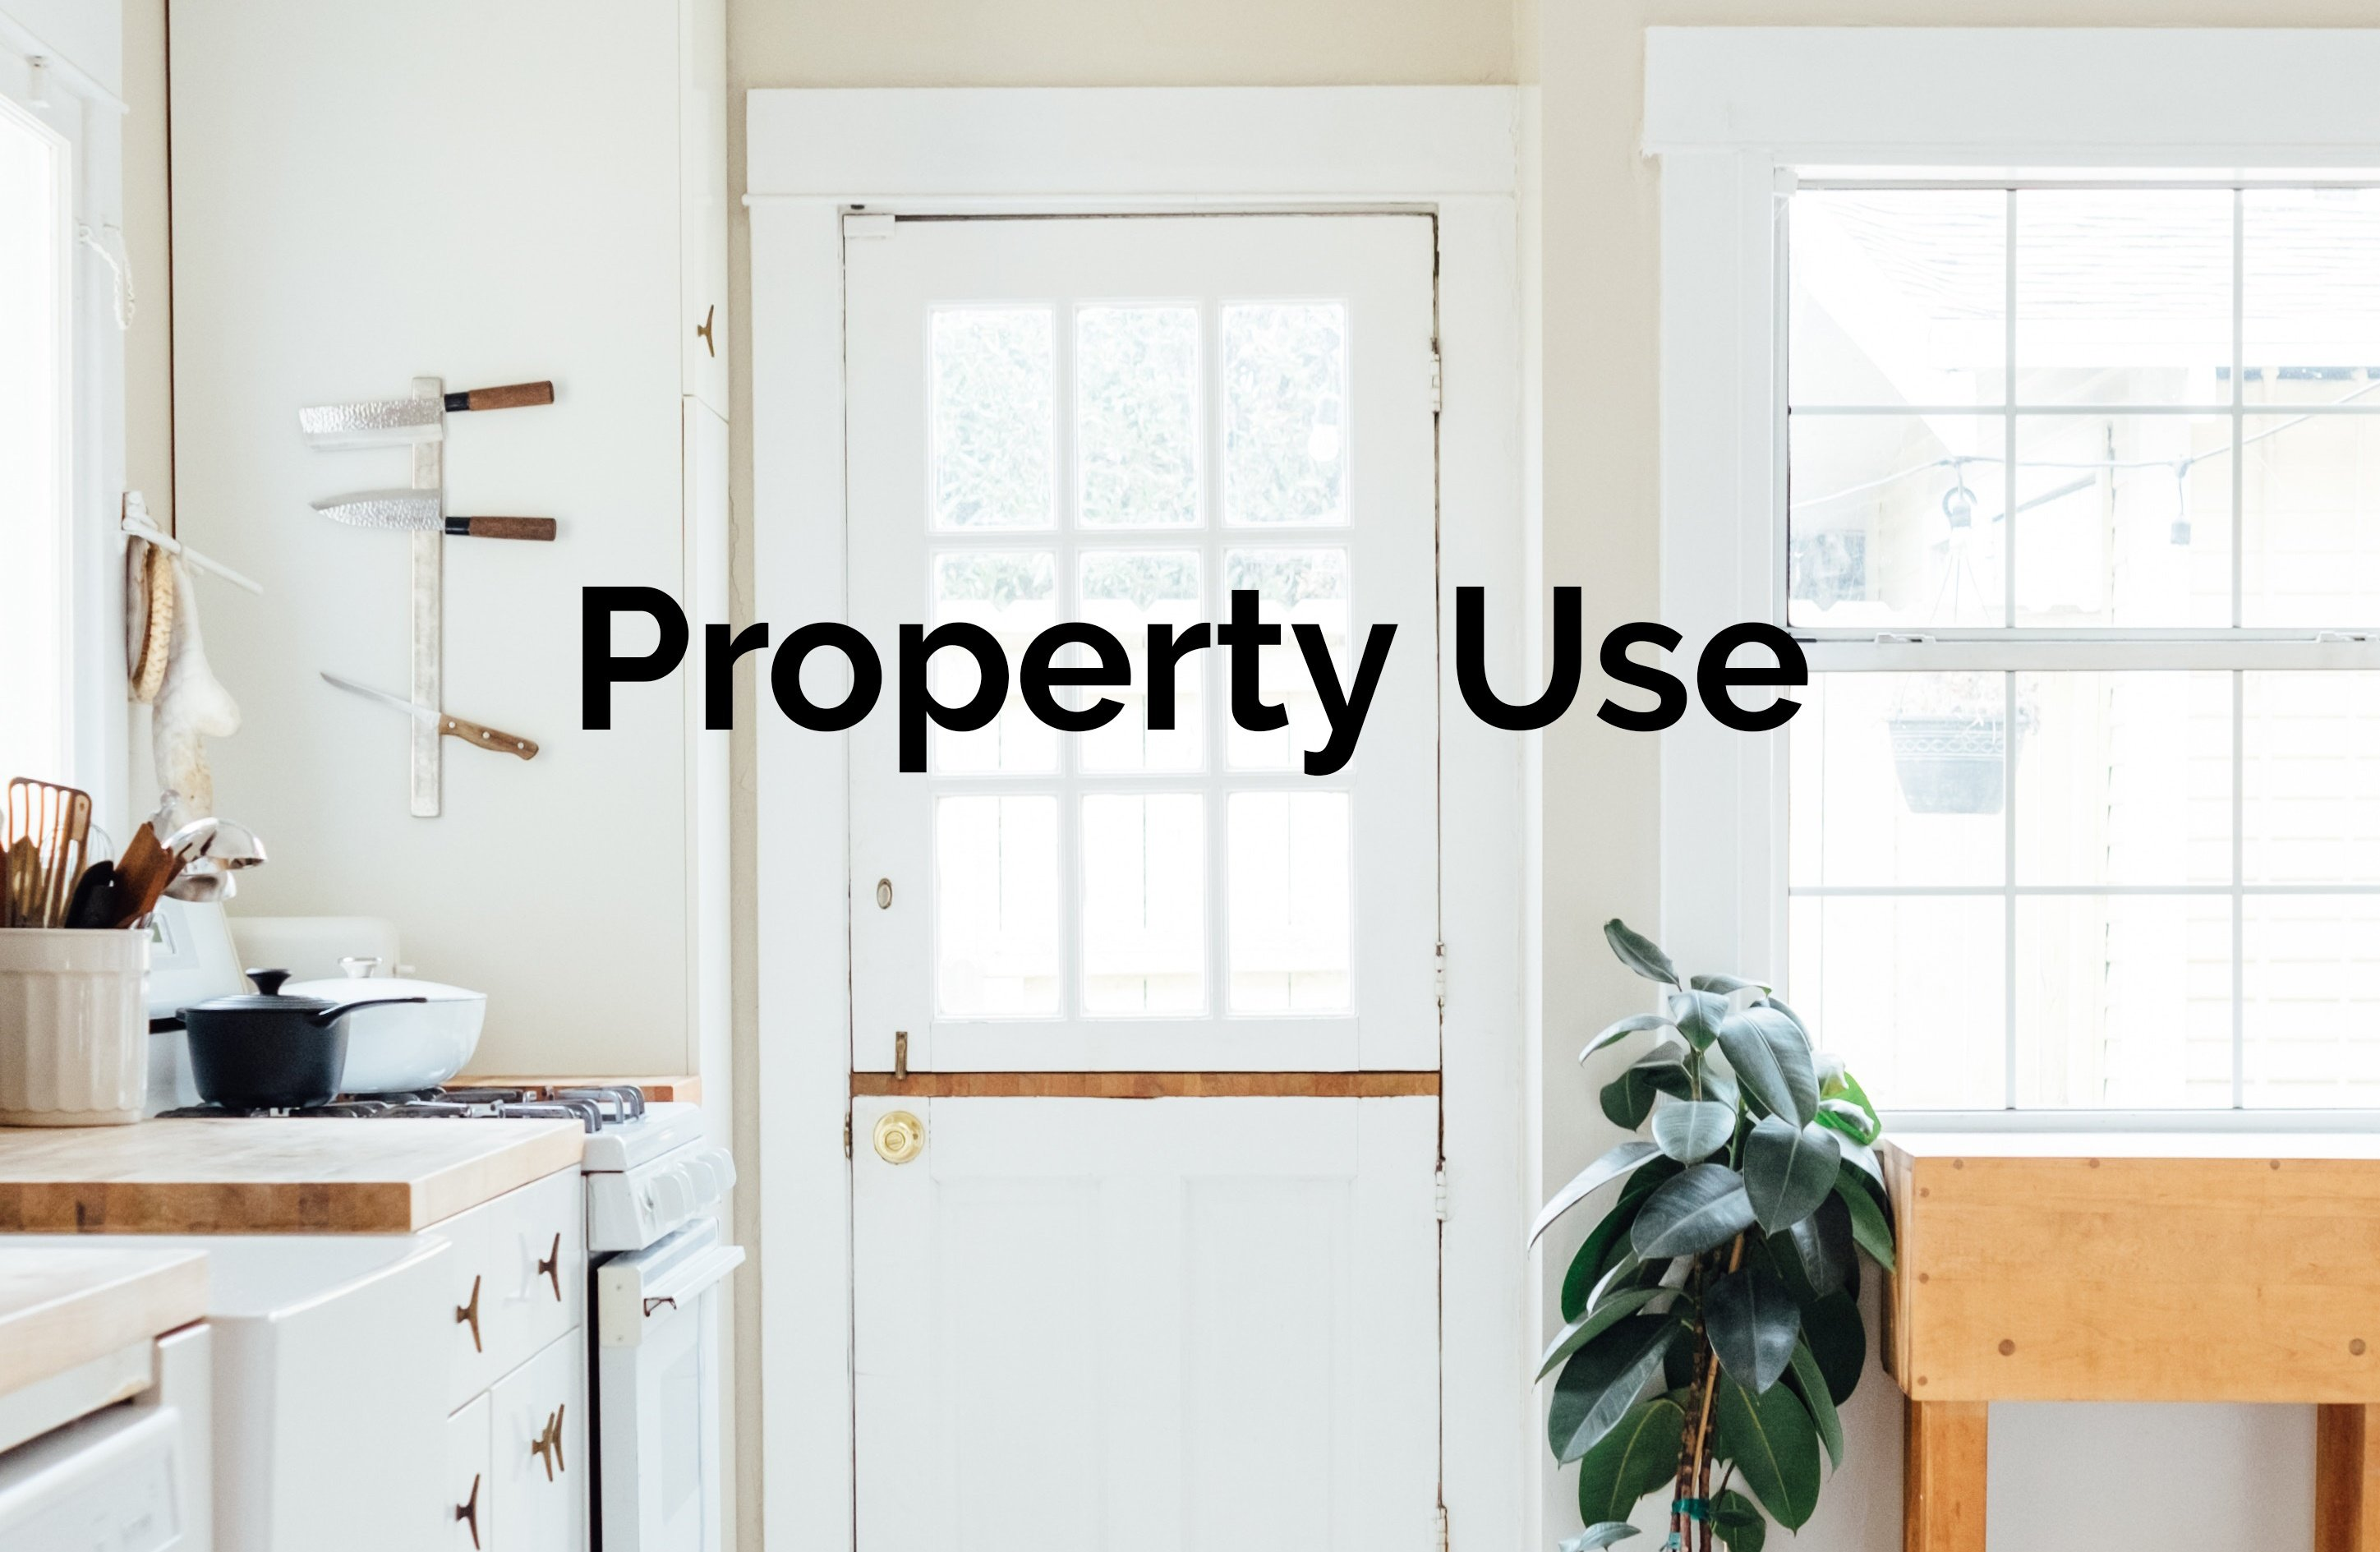 What is Property Use?